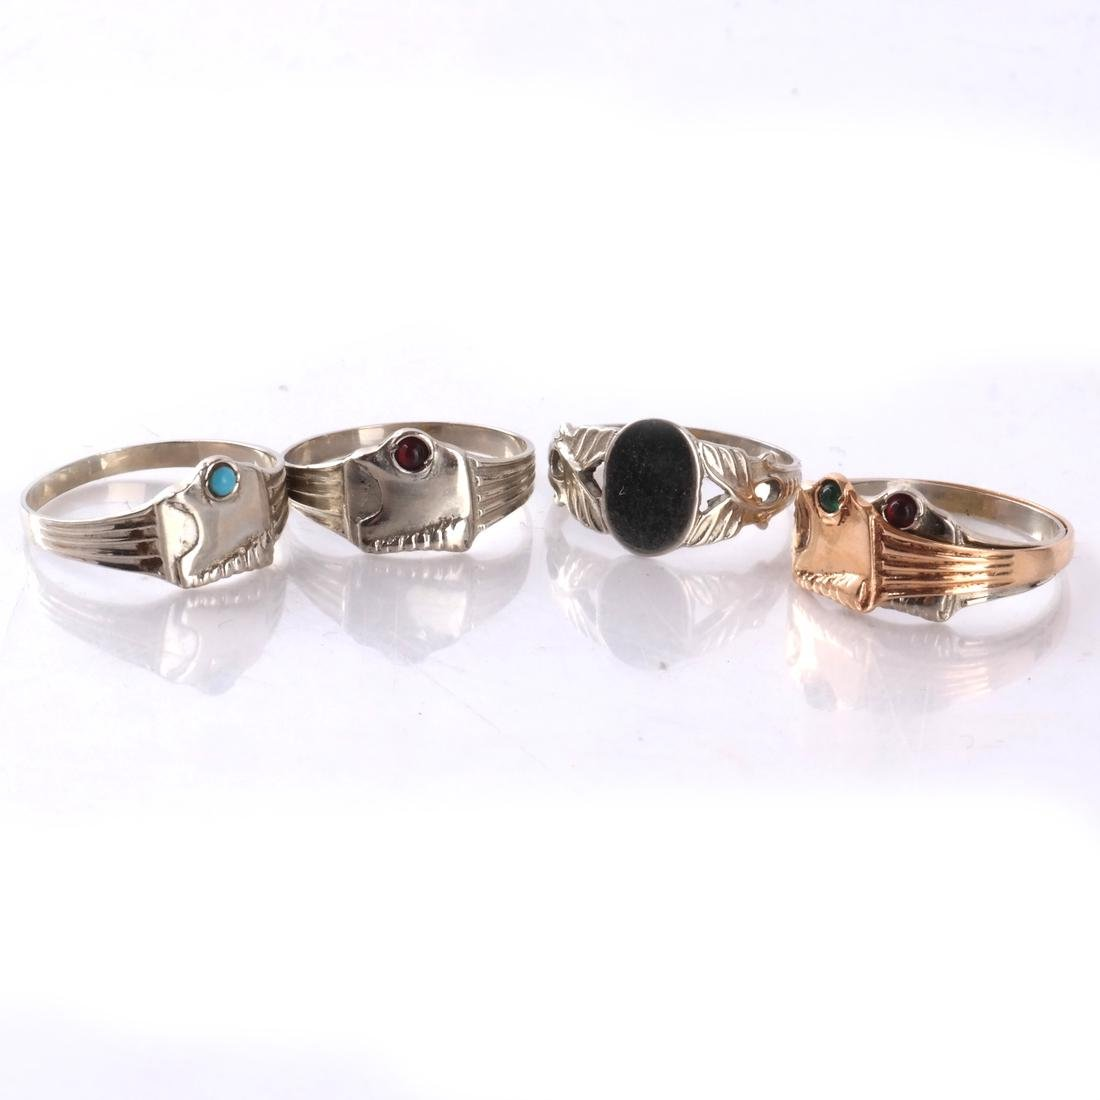 14k Baby's Rings in White and Yellow Gold - 2